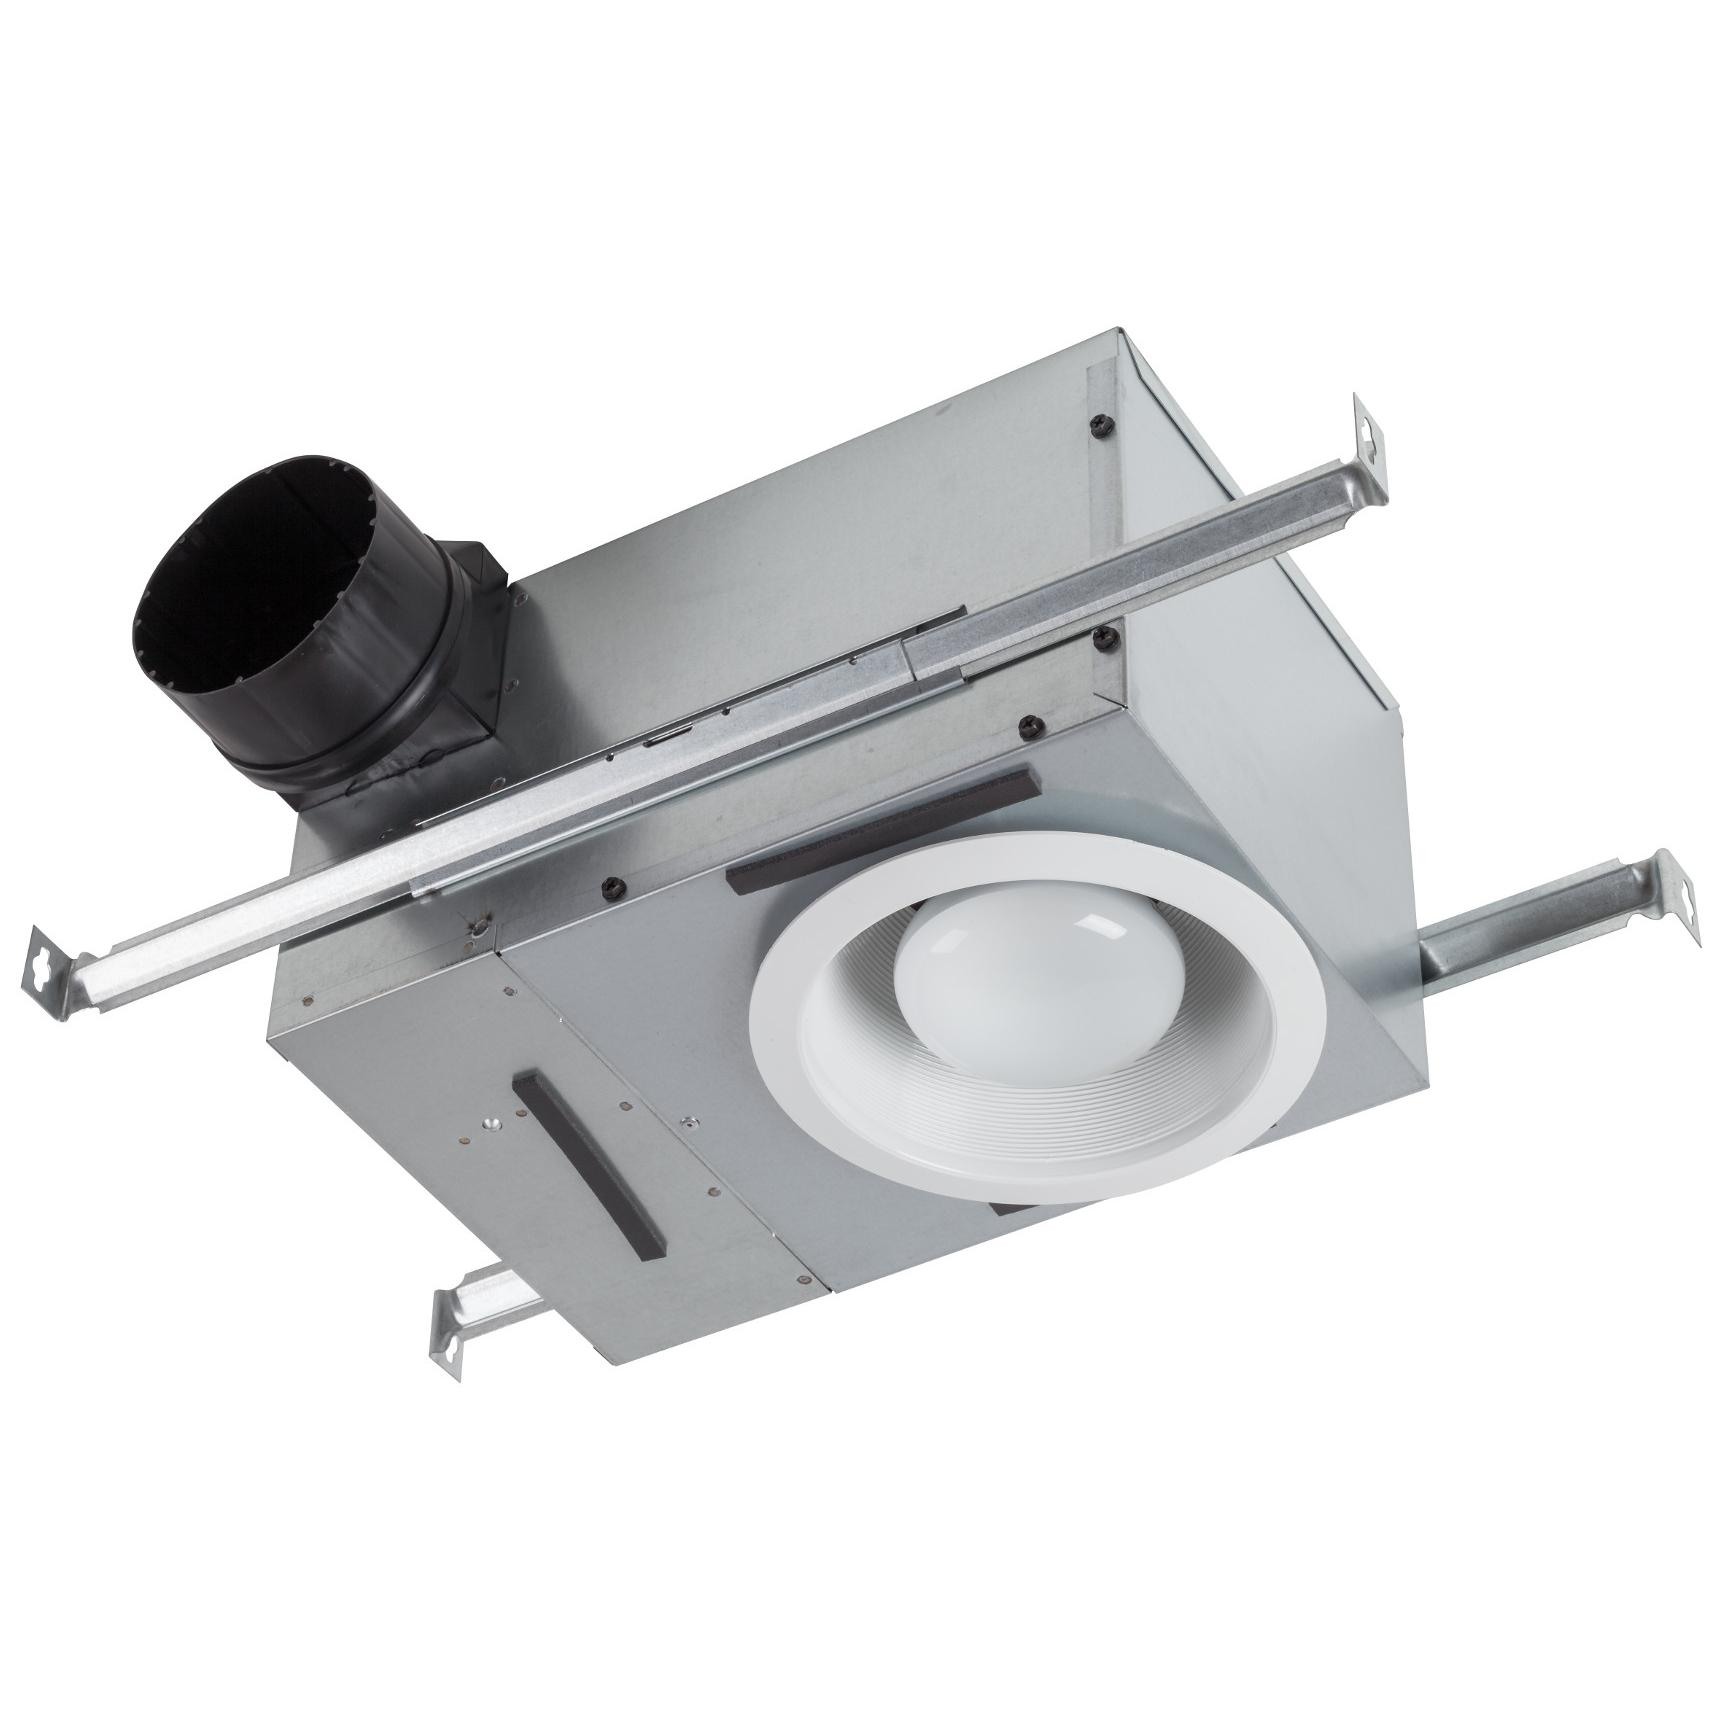 BROAN 744 Recessed Fan/Light showing housing unit and mounting brackets.  sc 1 st  Amazon.com & Broan 744 Recessed Bulb Fan and Light 70 CFM 75-Watt - Built In ... azcodes.com